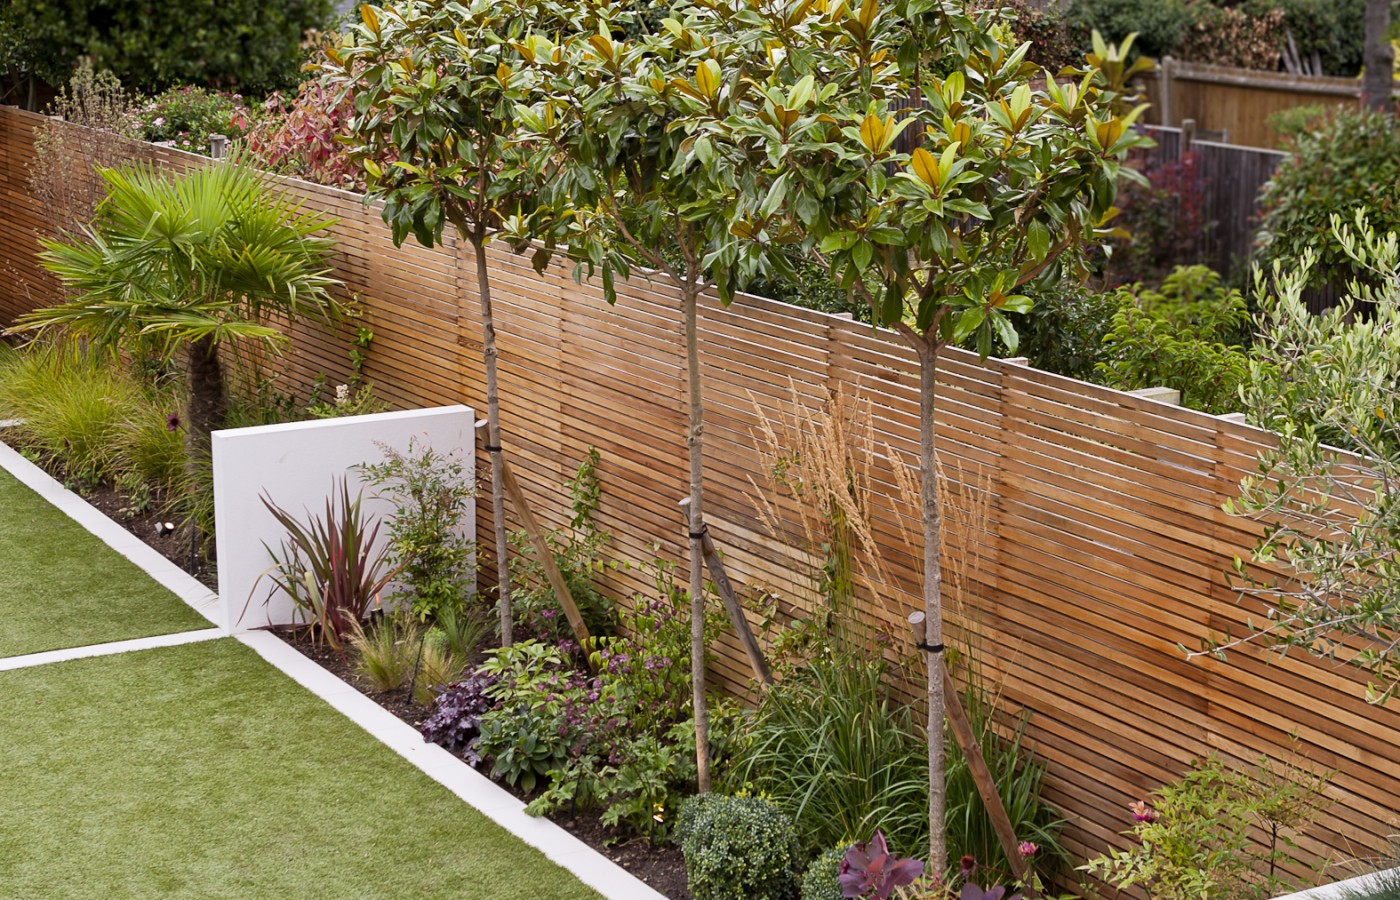 long thin garden design from the patio showing wooden seating and family planting in contained flowerbeds edging the lawn